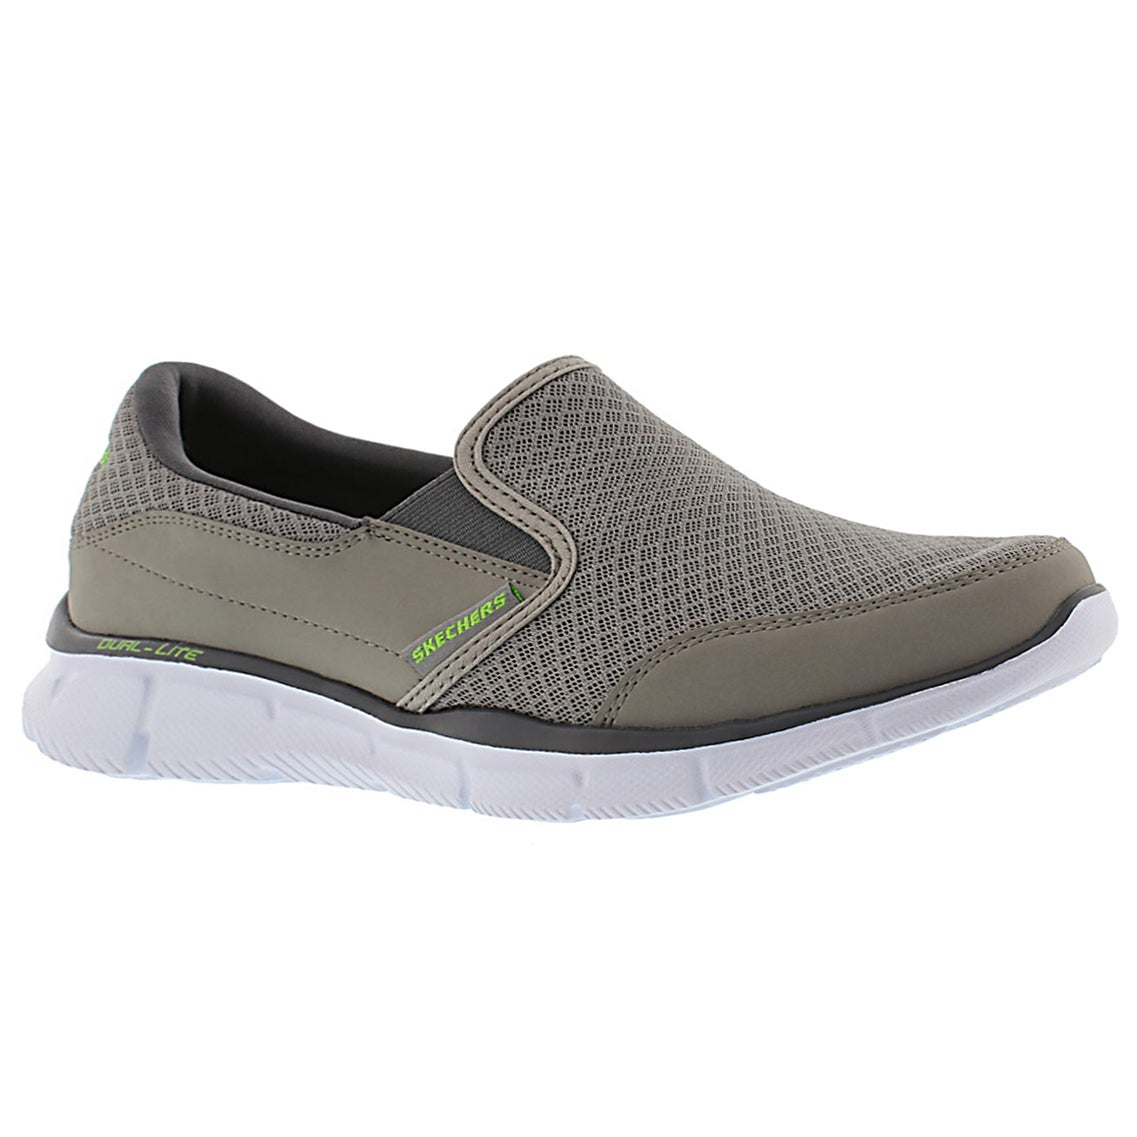 Men's PERSISTENT grey slip on sneakers